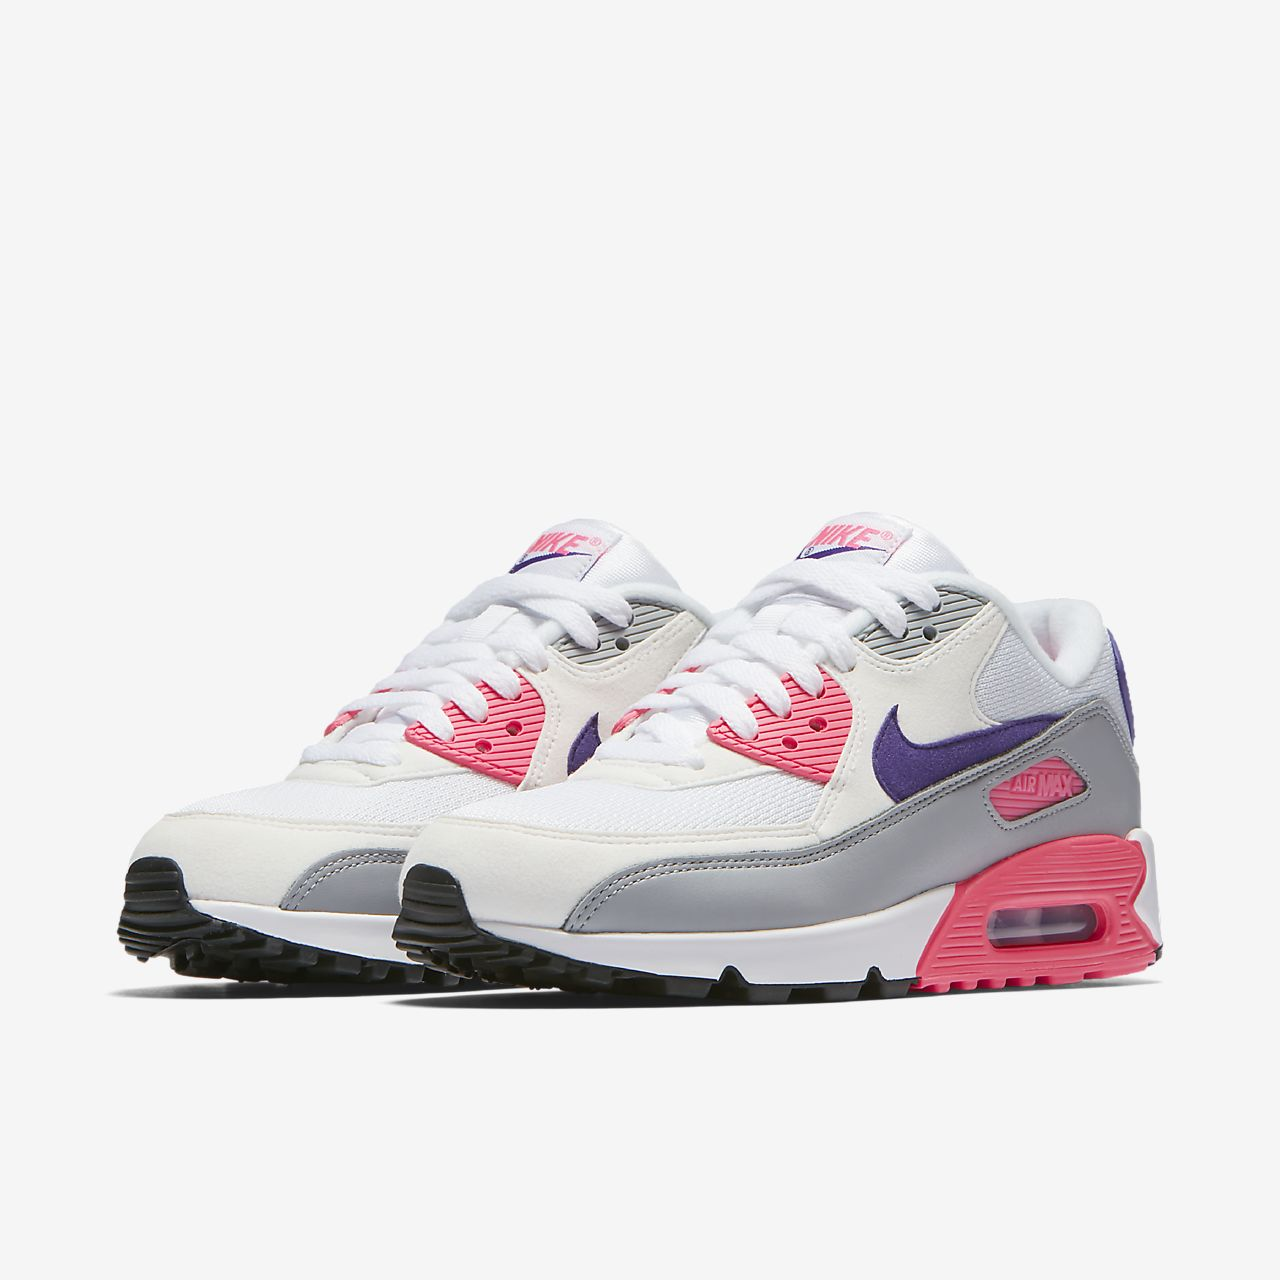 uk nike air max 2017 wolf gris gs 05395 55f3c